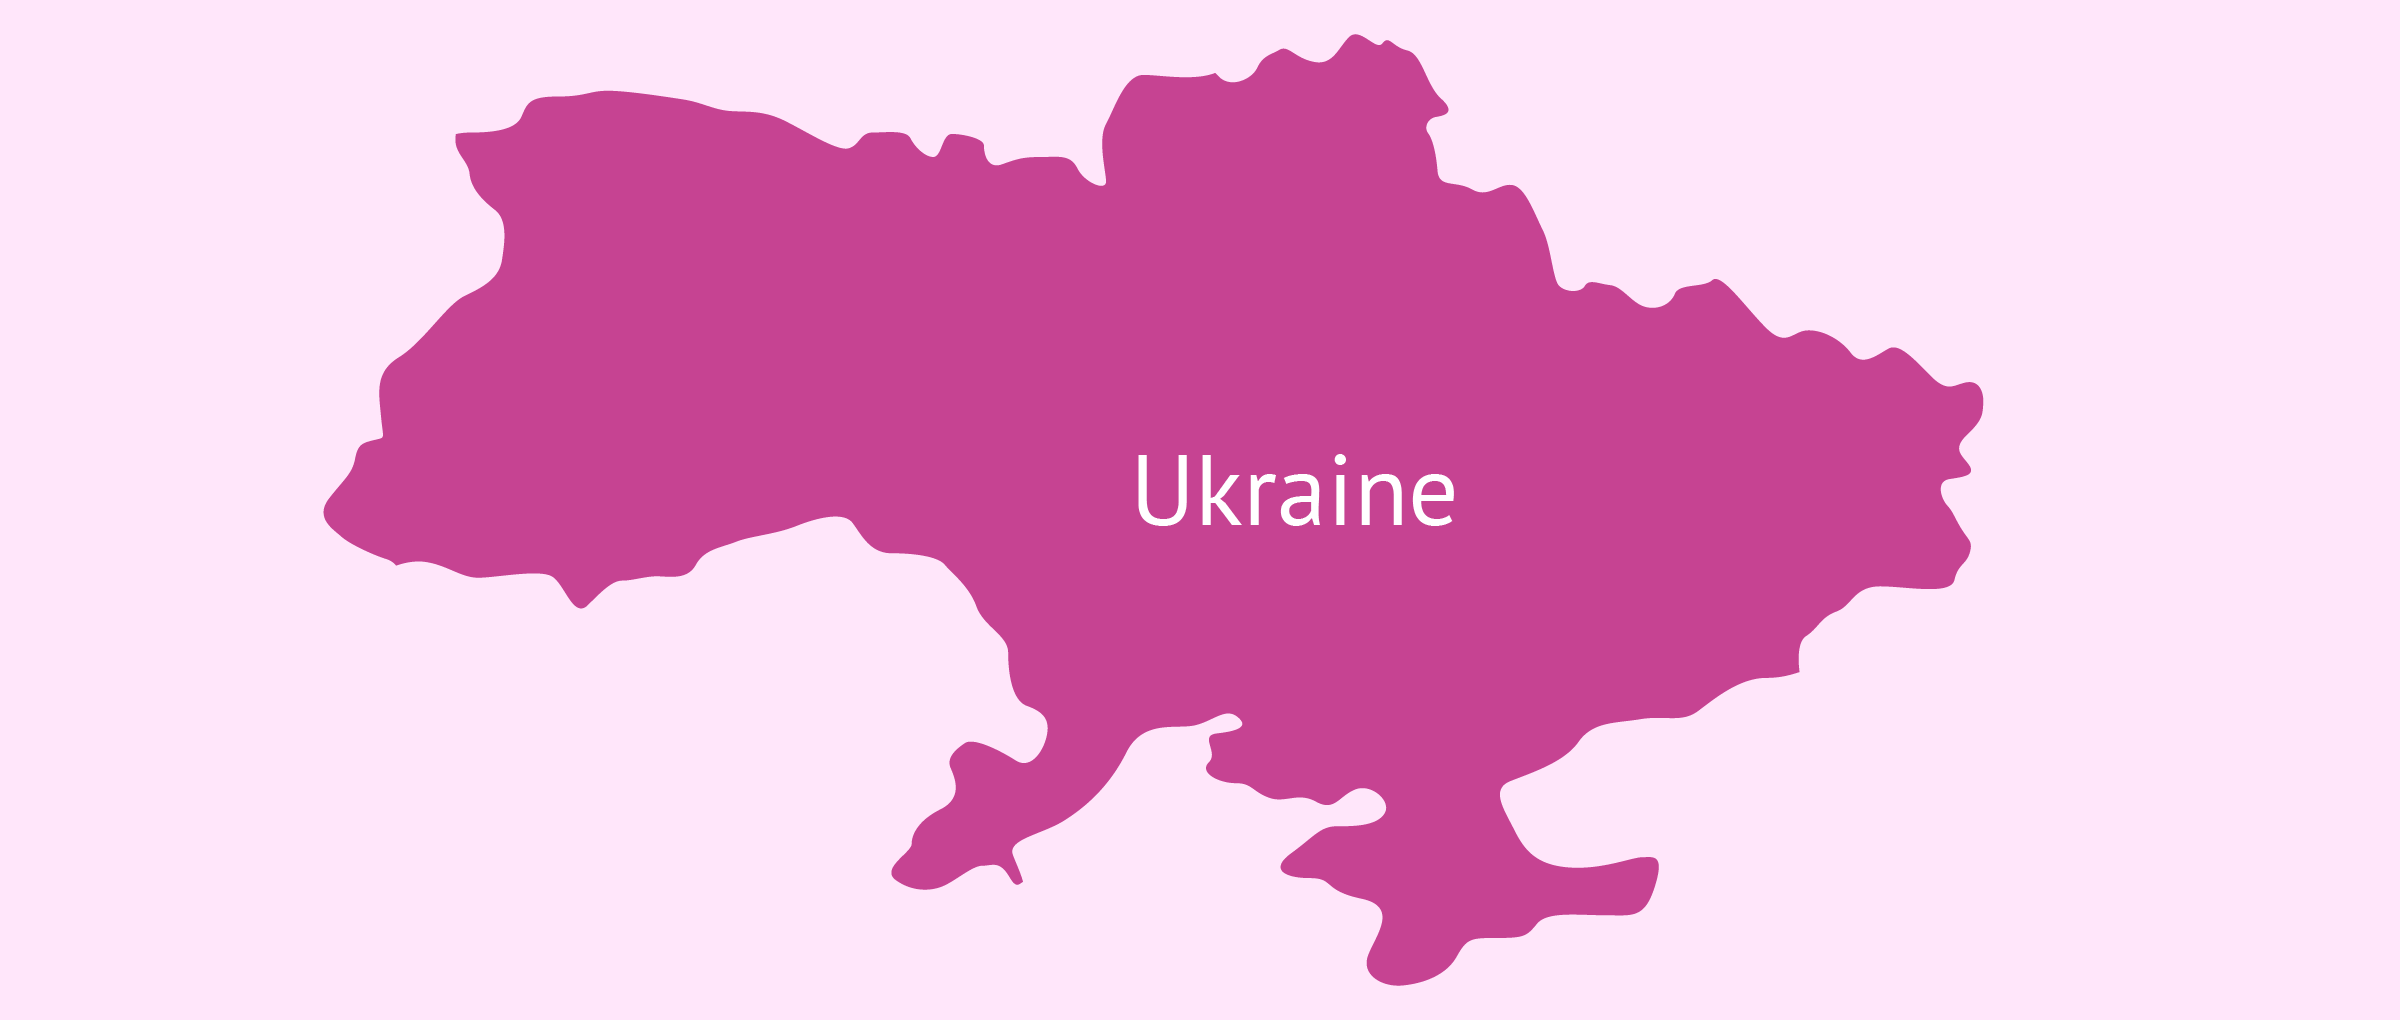 How Does Surrogacy Work in Ukraine? - Cost & Legal Aspects